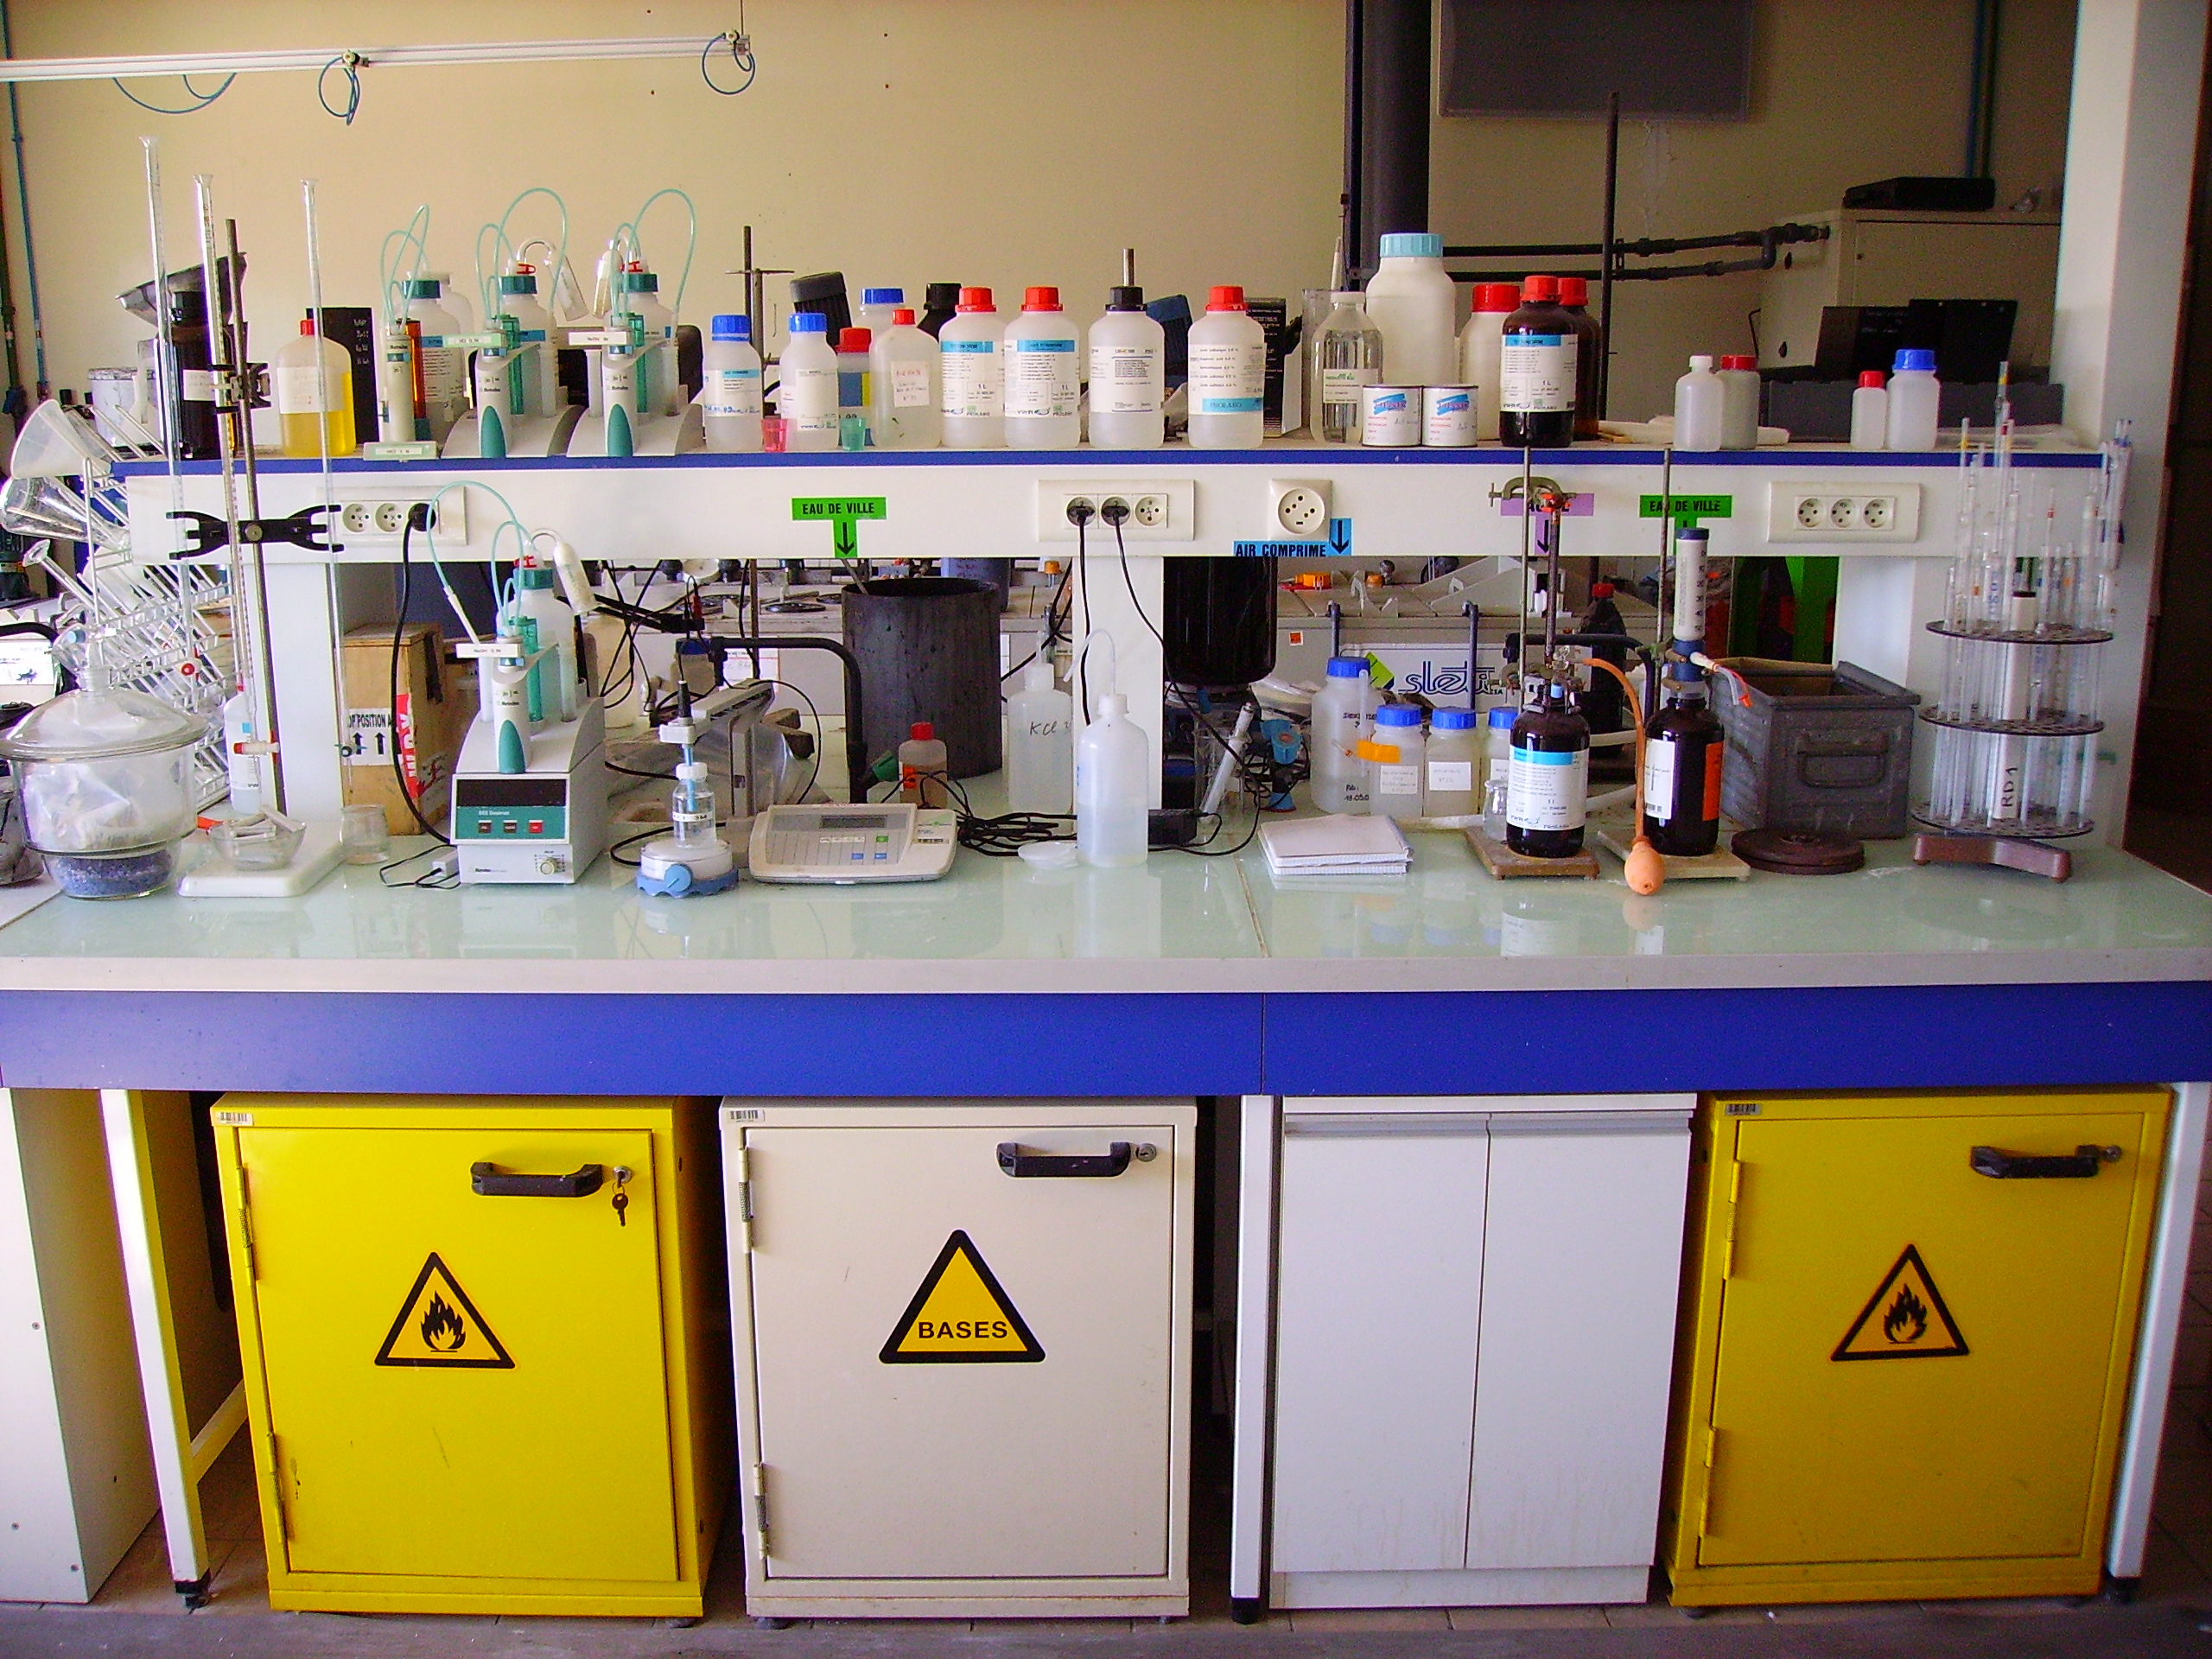 20 Science Lab Safety Rules For Students,Kids And Teachers